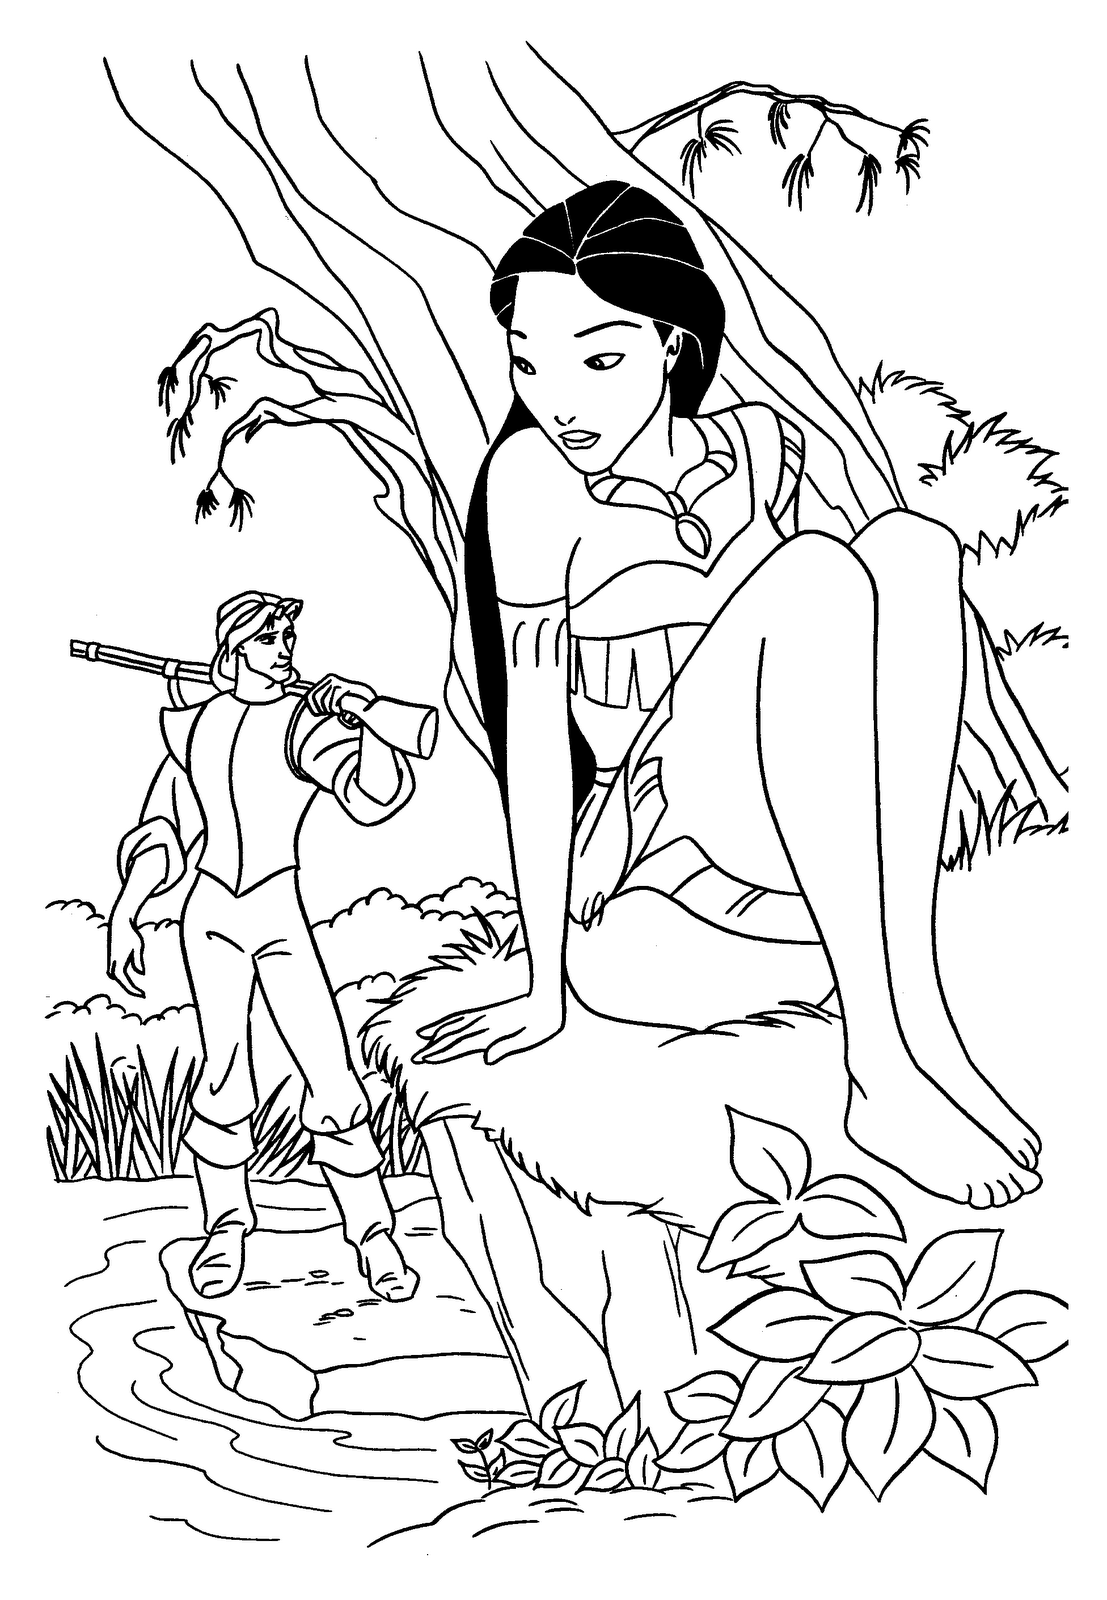 free coloring disney pages | Coloring Pages For Kids Disney Princess Pocahontas